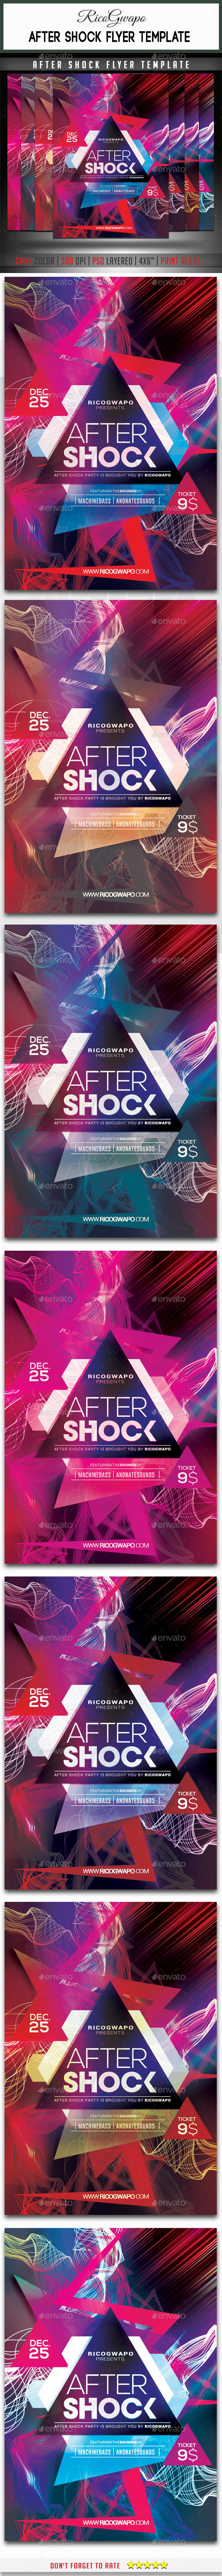 GraphicRiver After Shock Flyer Template 8858731